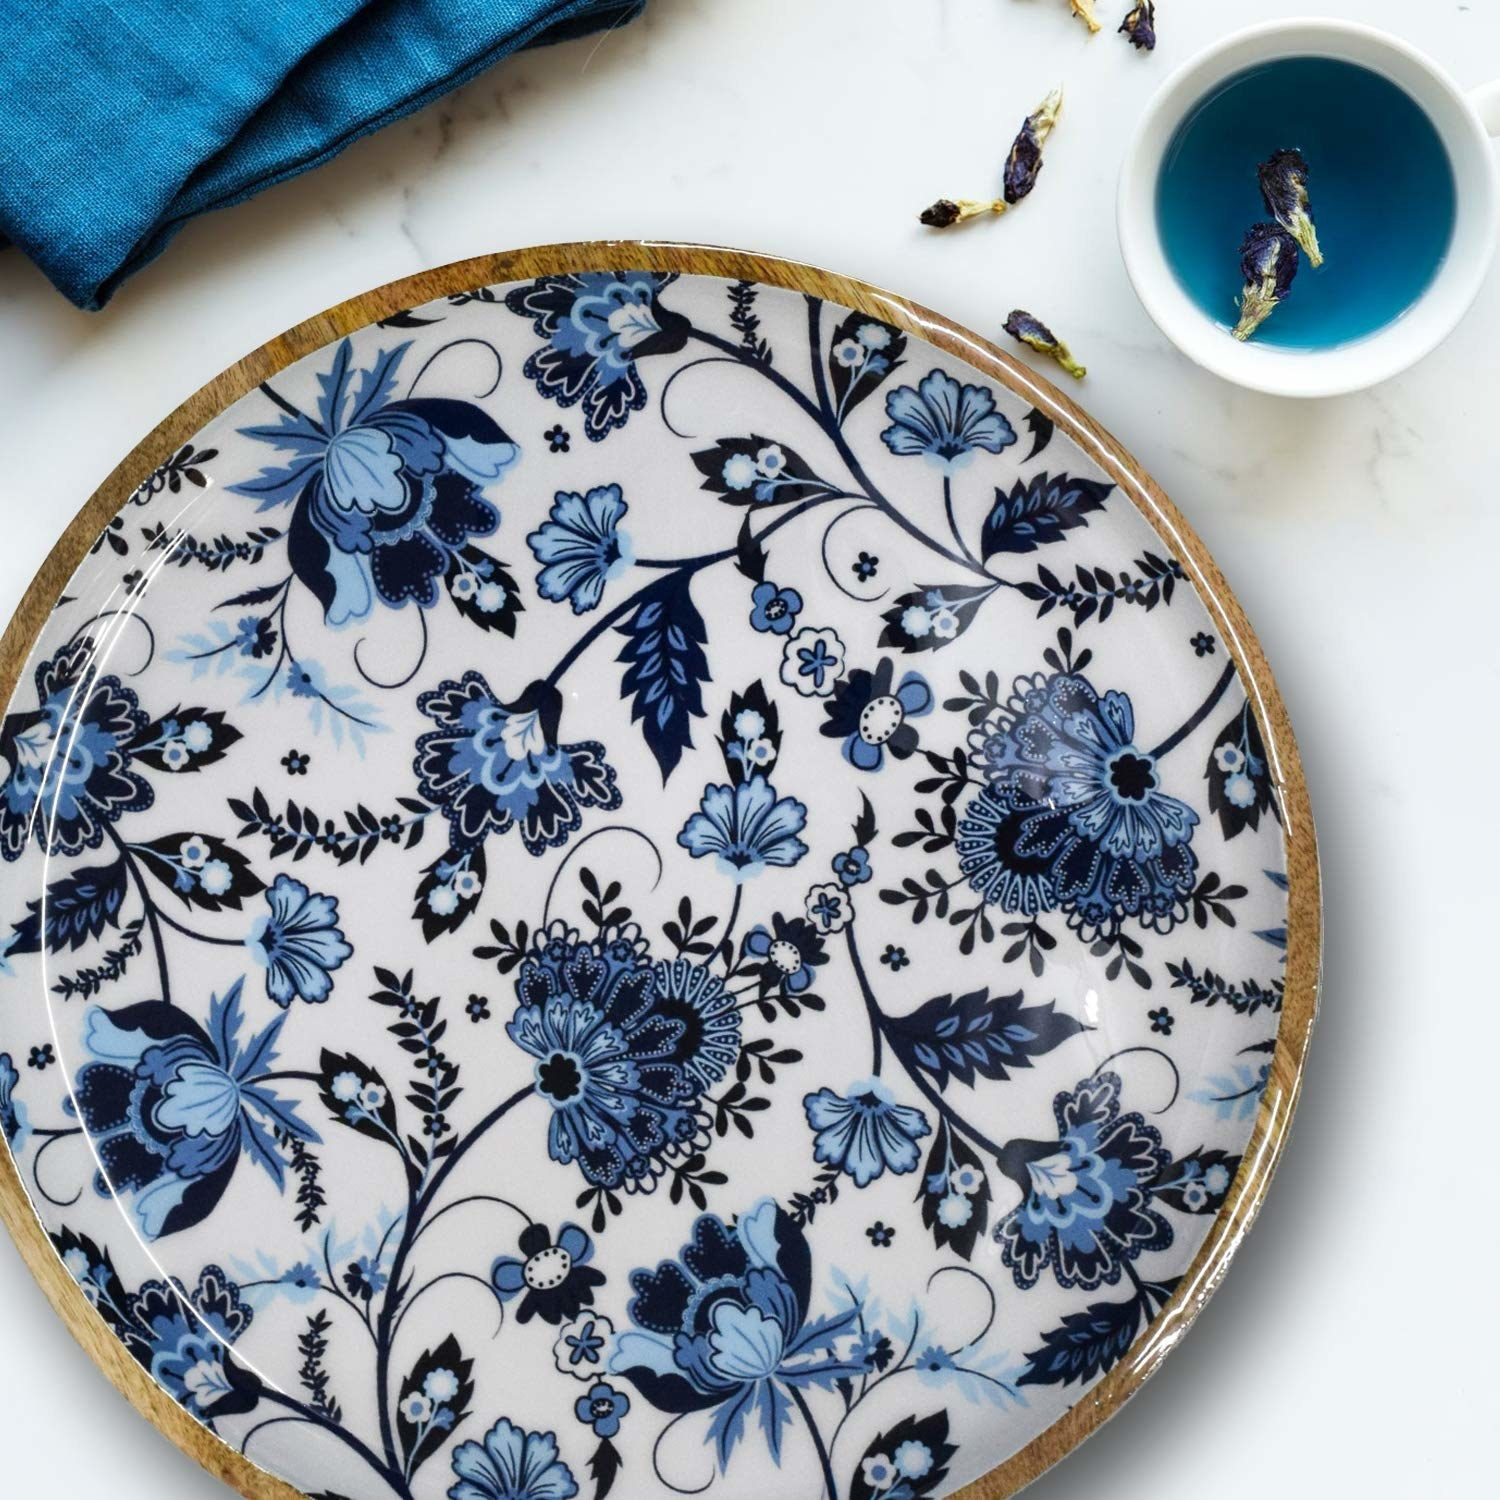 A white trinket dish with a blue floral design and golden rim.